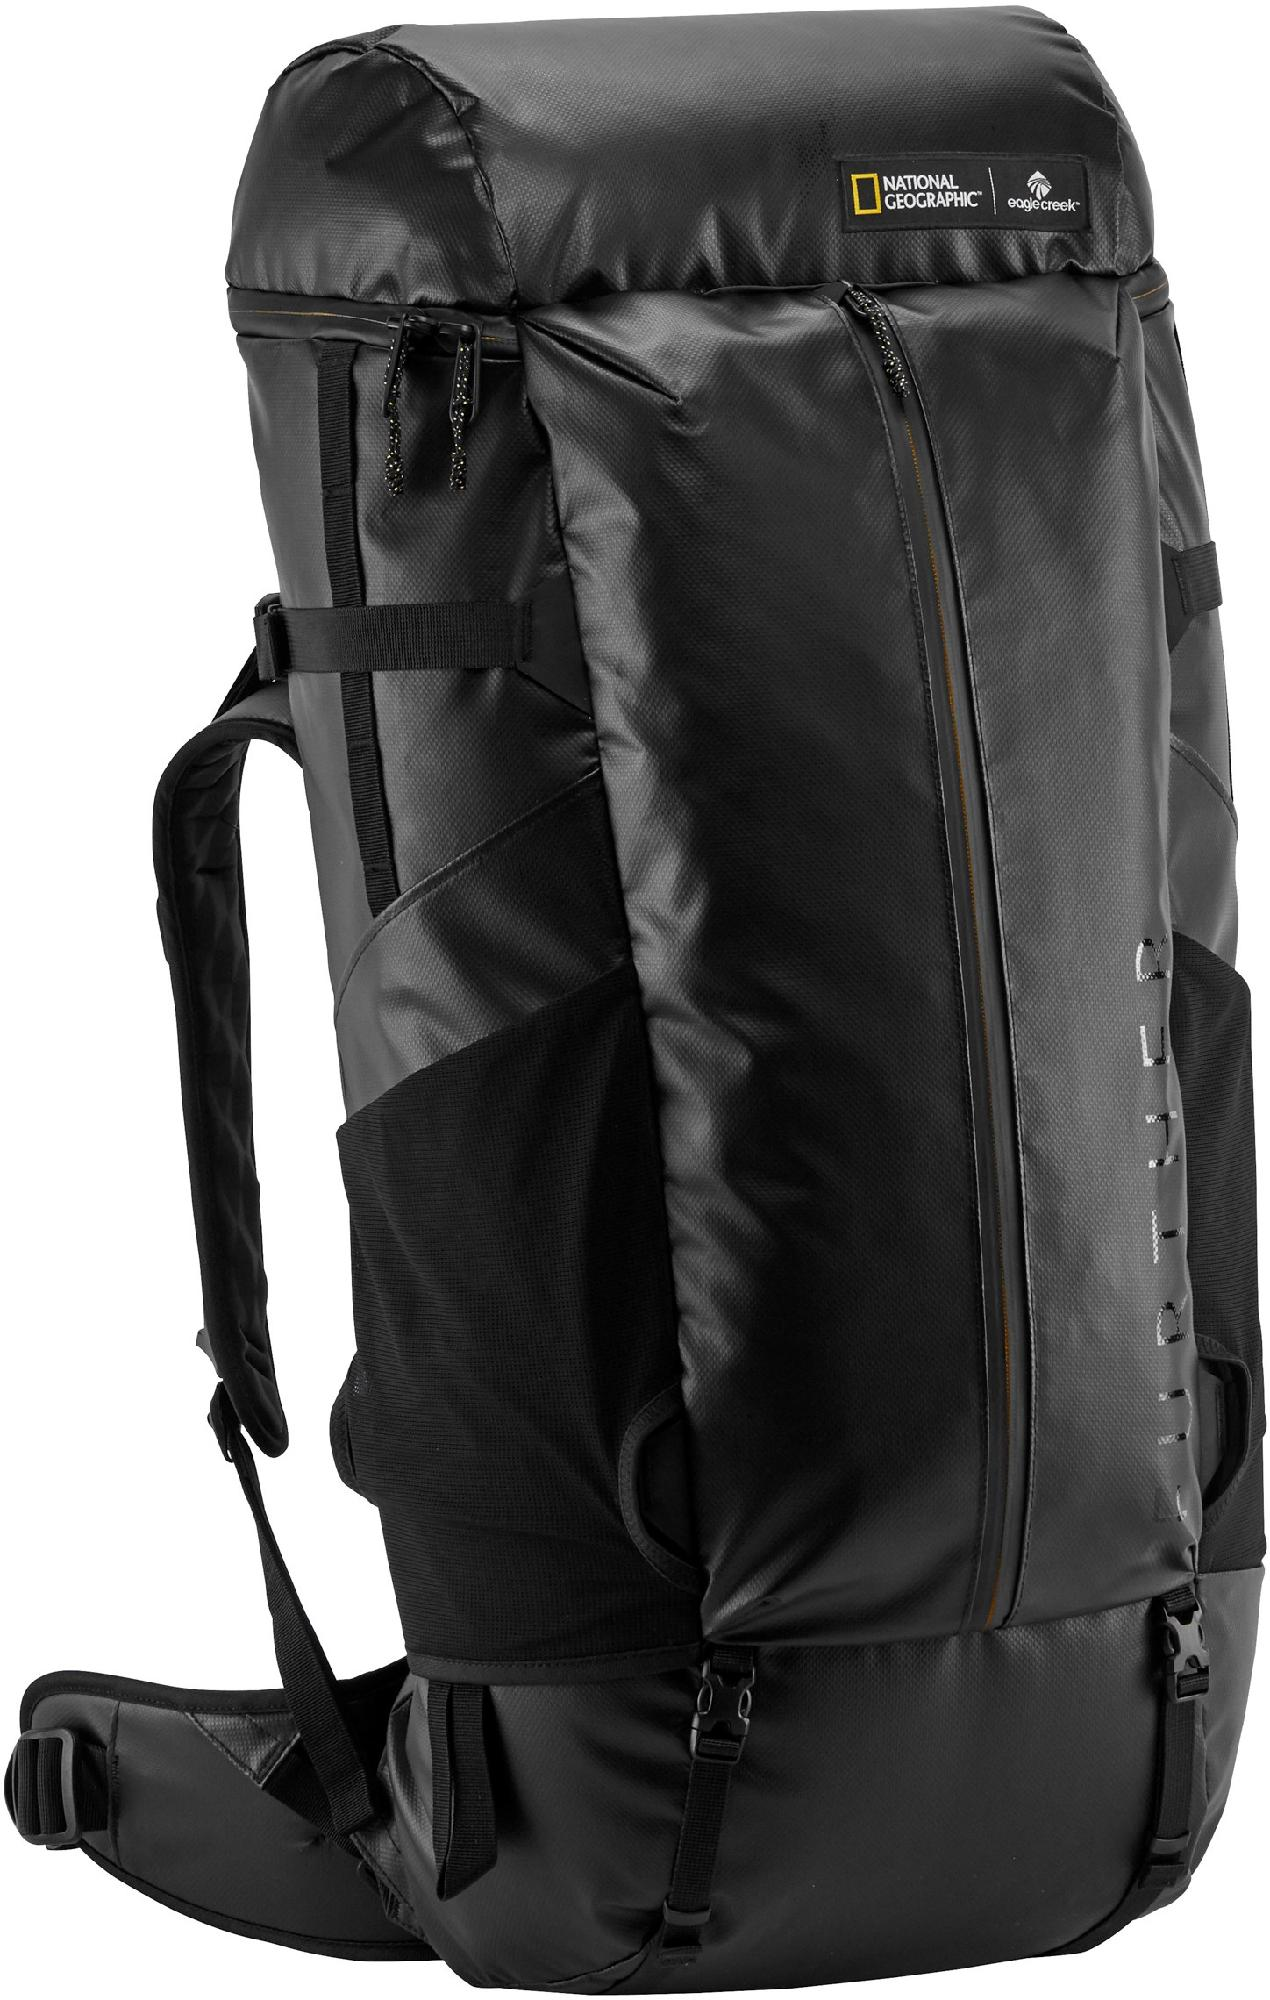 Eagle Creek National Geographic Series Guide Travel Pack - 65L